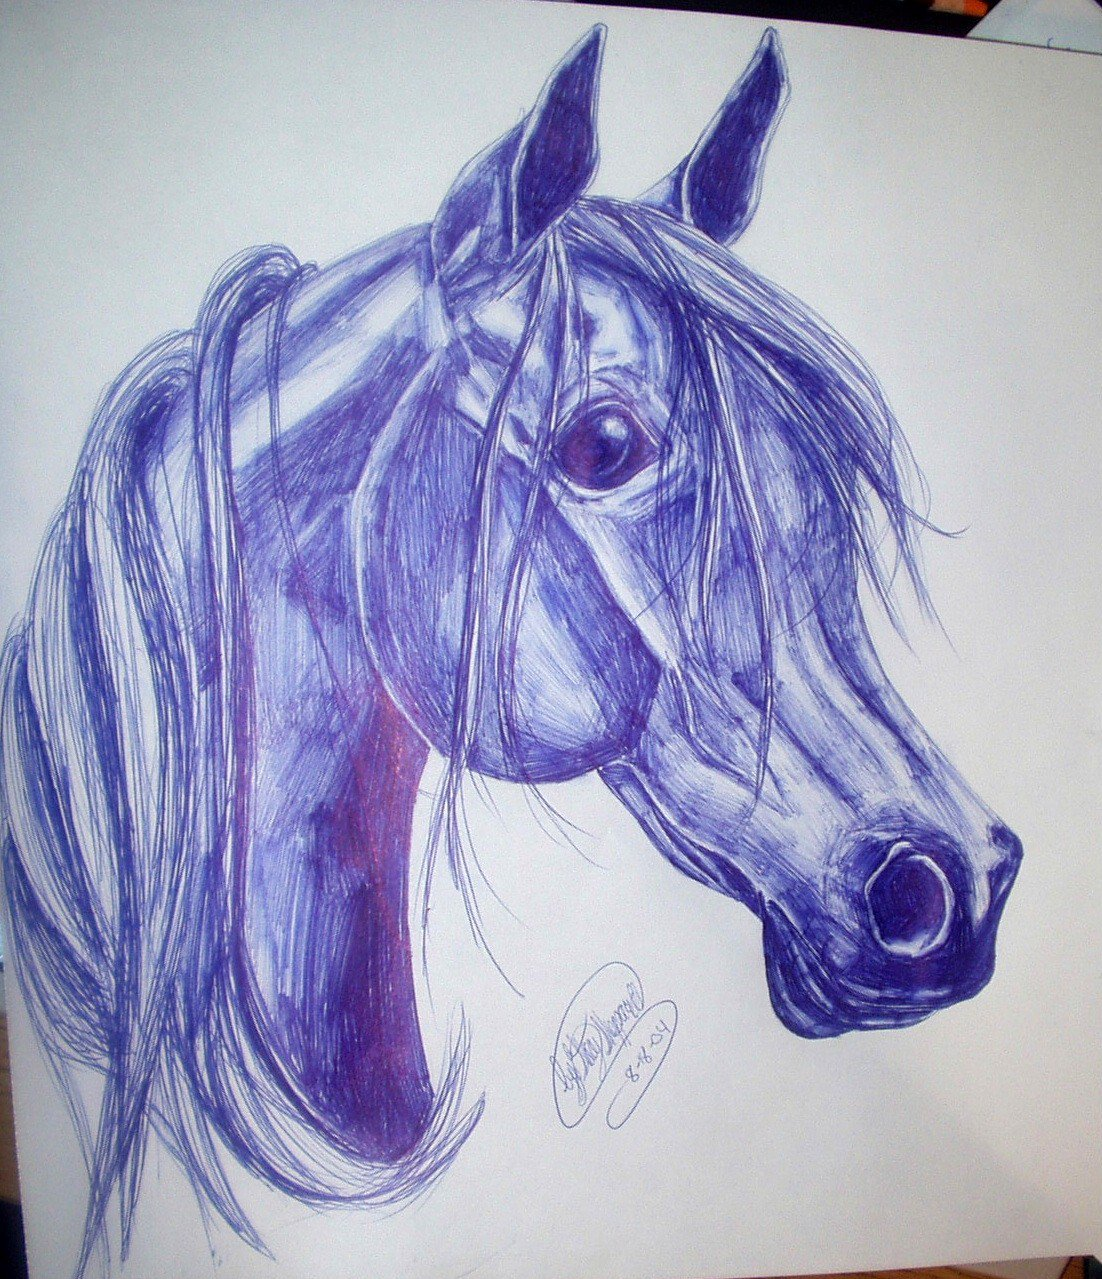 Drawn pen horse On horse smerfette by by